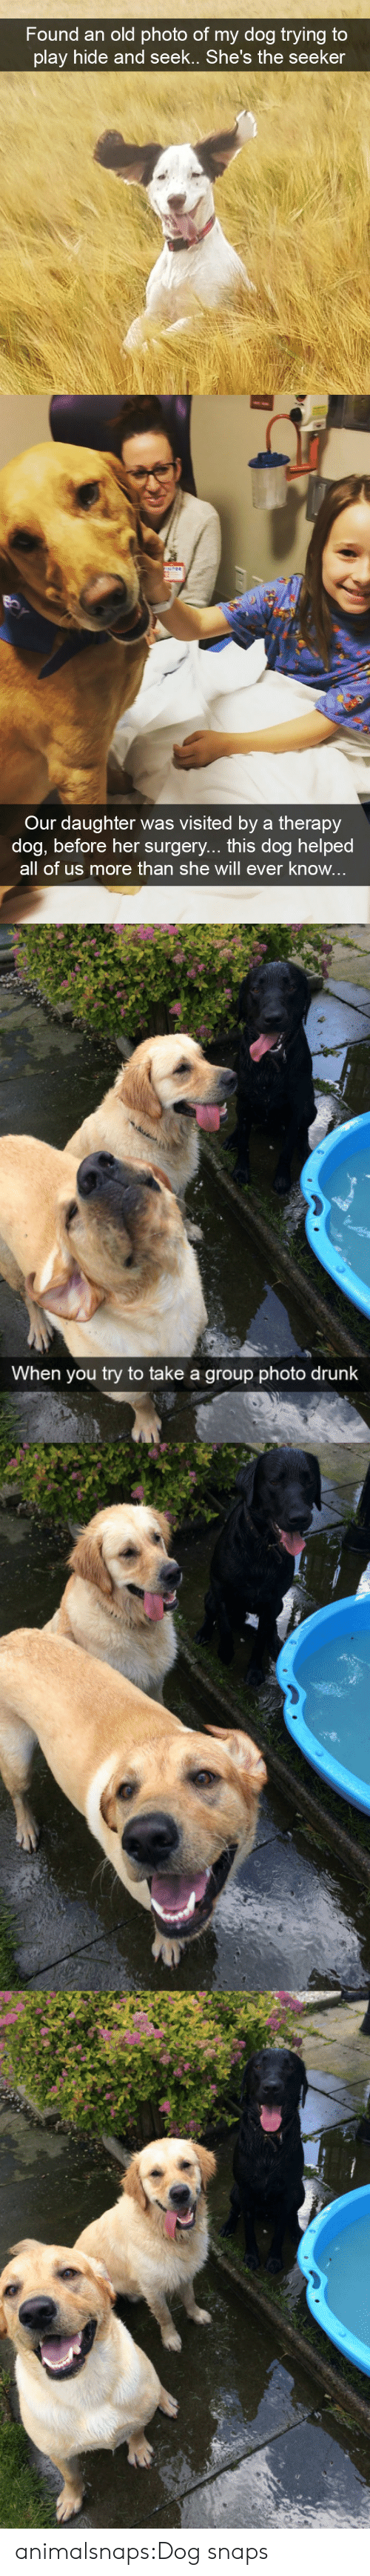 Drunk, Target, and Tumblr: Found an old photo of mv doa trving tO  play hide and seek.. She's the seeker   Our daughter was visited by a therapy  dog, before her surgery... this dog helped  all of us more than she will ever know   When you try to take a group photo drunk animalsnaps:Dog snaps